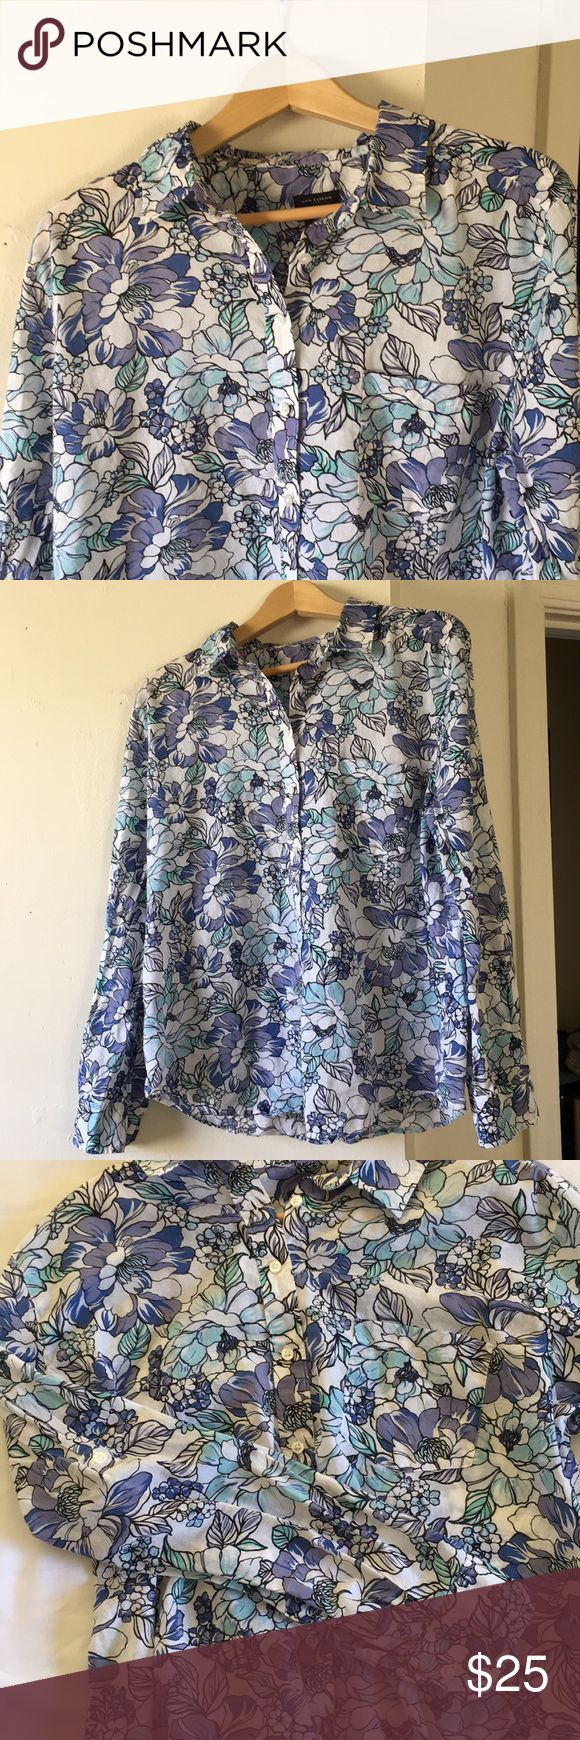 "Ann Taylor Floral Button-down This pretty floral shirt will be great for summer!  100% cotton, nice and lightweight.  The floral pattern is in lovely shades of blue and teal on a white background, and there is a single breast pocket on the left side.  Roll-tab sleeves with a button for a more casual look.  23"" pit to pit, 26"" shoulder to hem.  EUC, no flaws. Ann Taylor Tops Button Down Shirts"